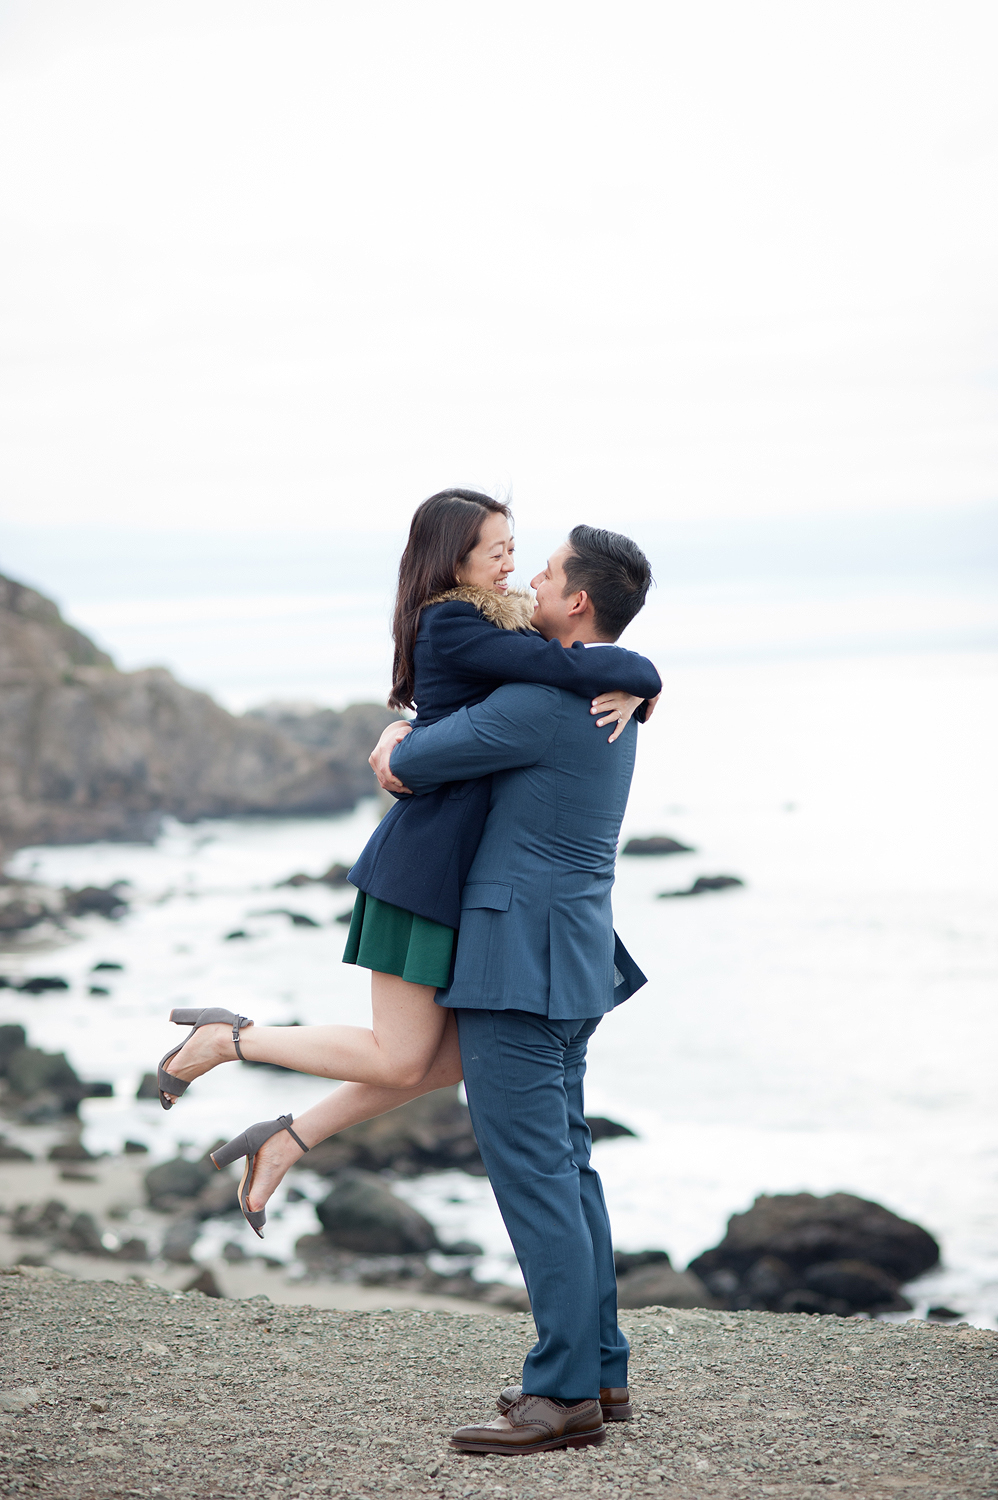 Cindy_John_Engaged_November_20_2017_0075.jpg